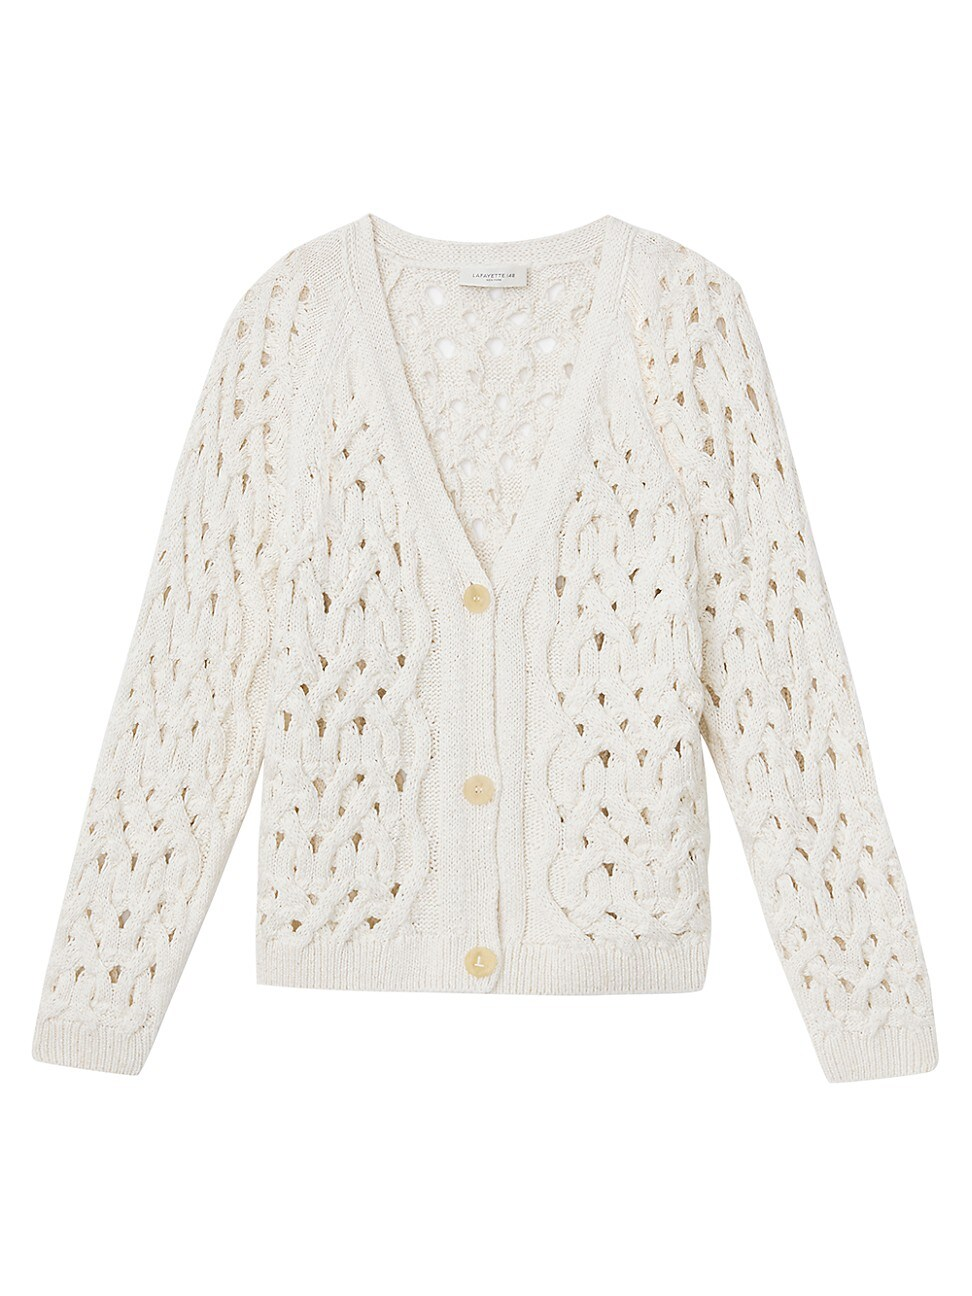 Lafayette 148 WOMEN'S CABLE KNIT BUTTON-UP CARDIGAN